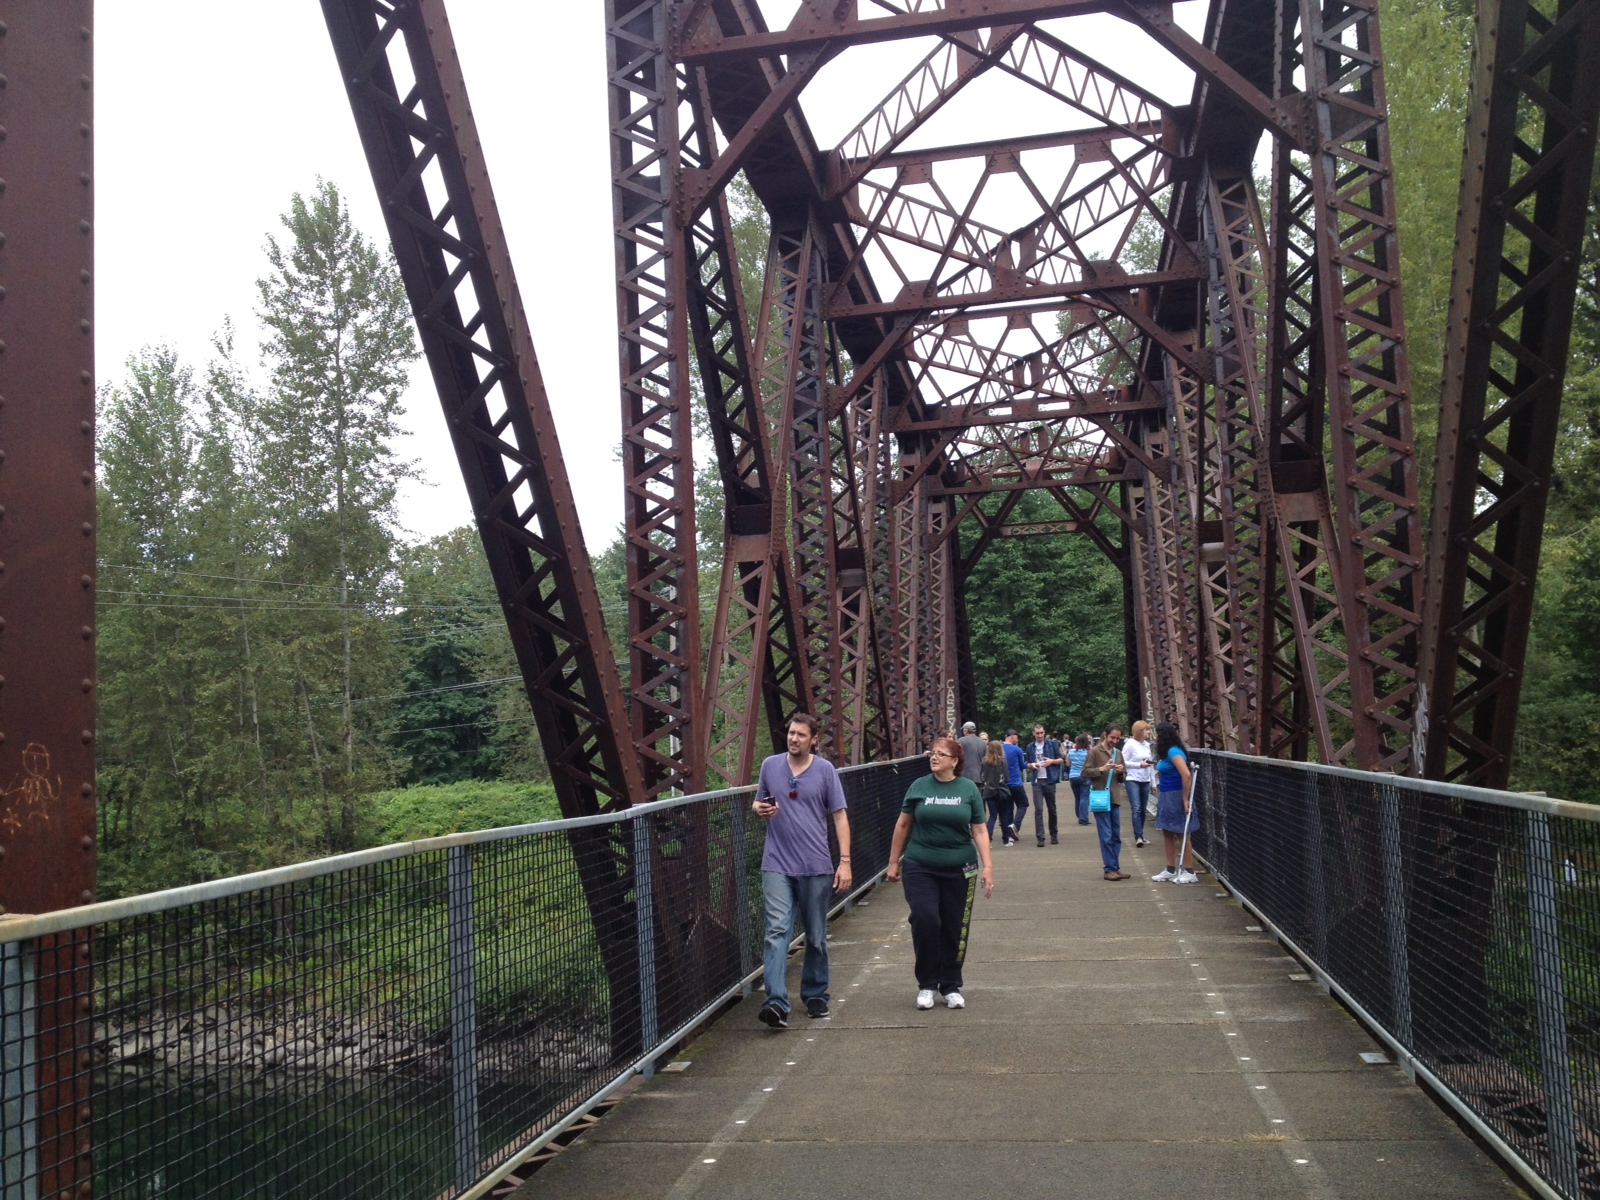 Traversing Ronette Pulaski's bridge. The train track has been converted into a lovely walking path.